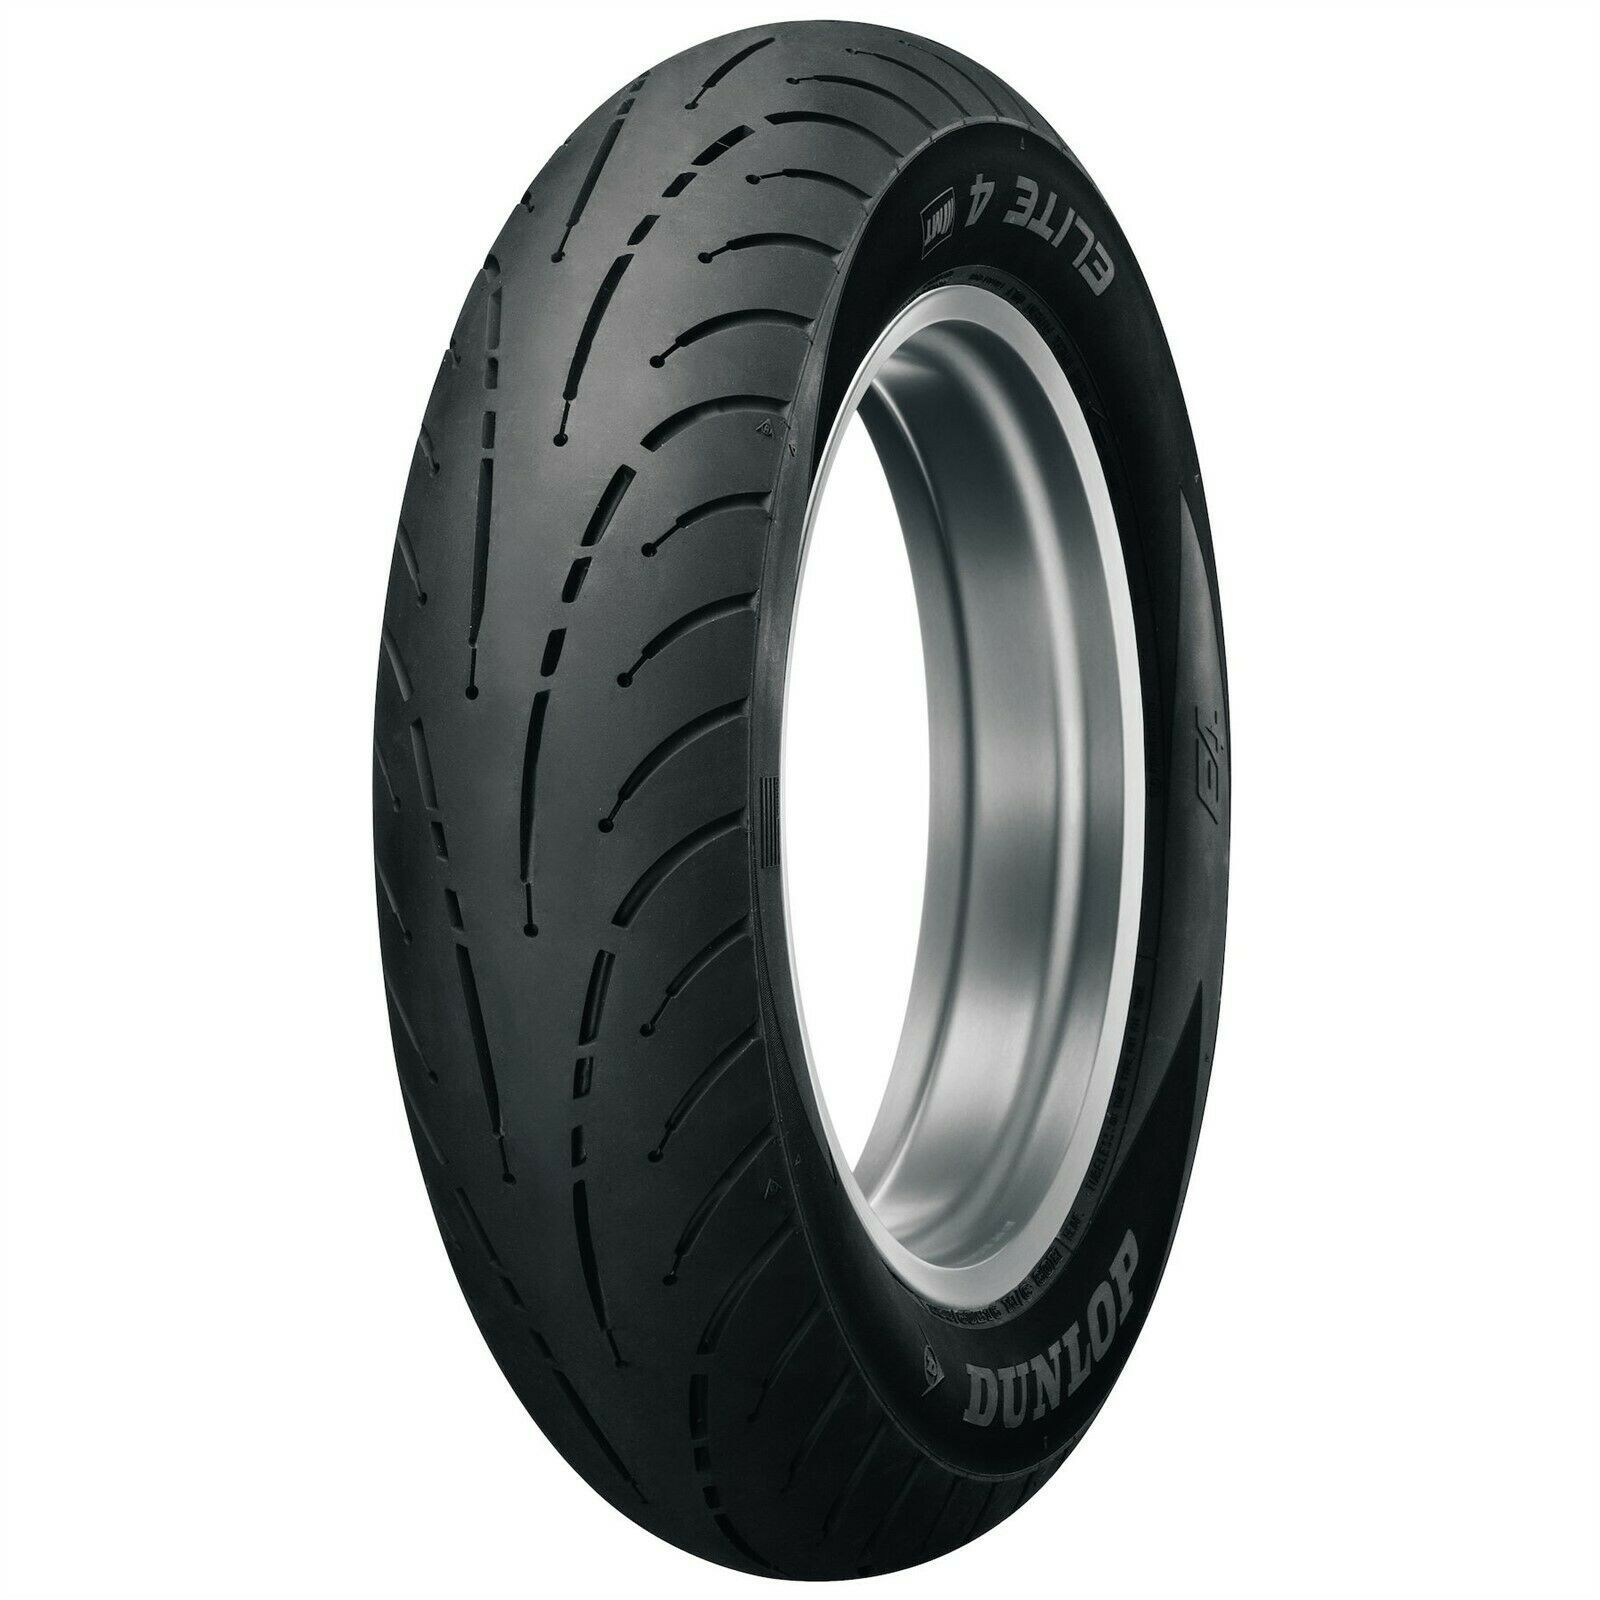 New Dunlop Elite 4 200/55-16 Radial Rear Motorcycle Tire 80H High Mileage